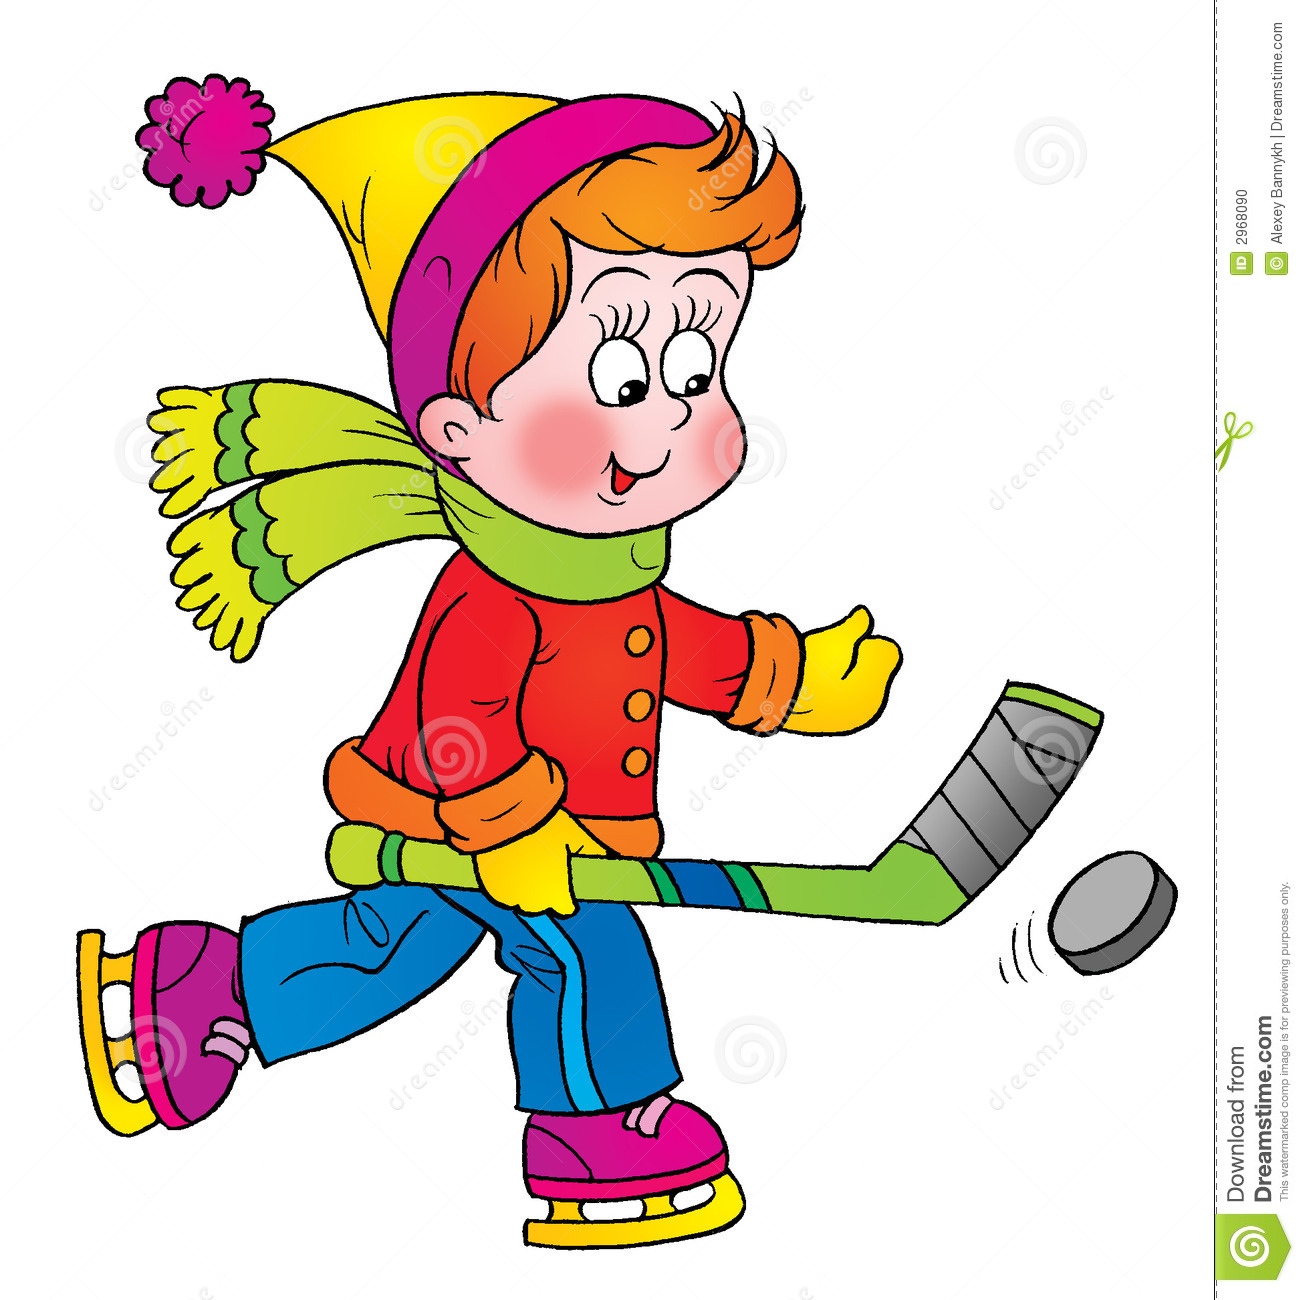 Kids hockey clipart